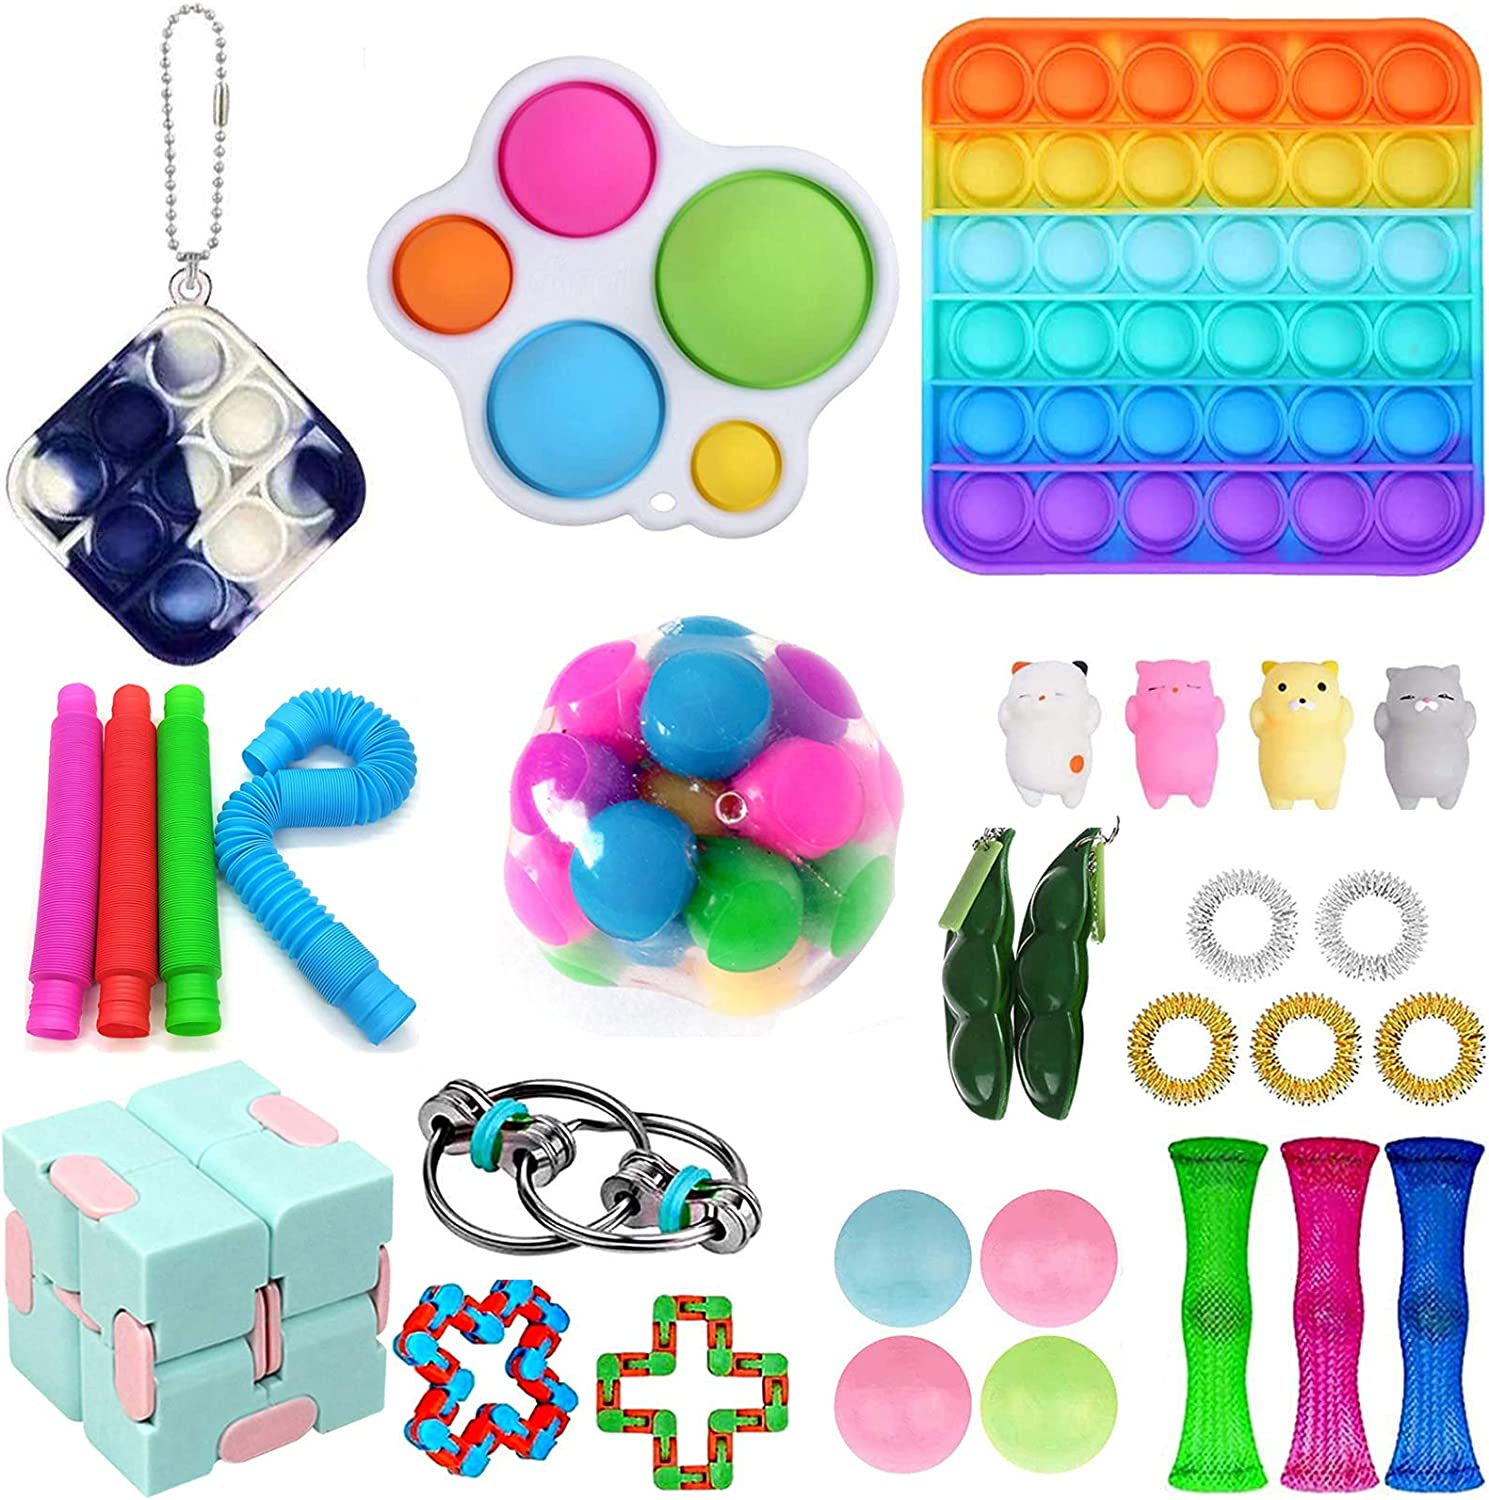 LWXQWDS 30Pcs Fidget Toy Set Fidget Pack Cheap Sensory Relieve Stress and Anxiety Toys for Kids Adults, Fidget Pack with DNA Stress Ball in It, Tie Dye Push Pop Bubble Toy &More (30 Packs)